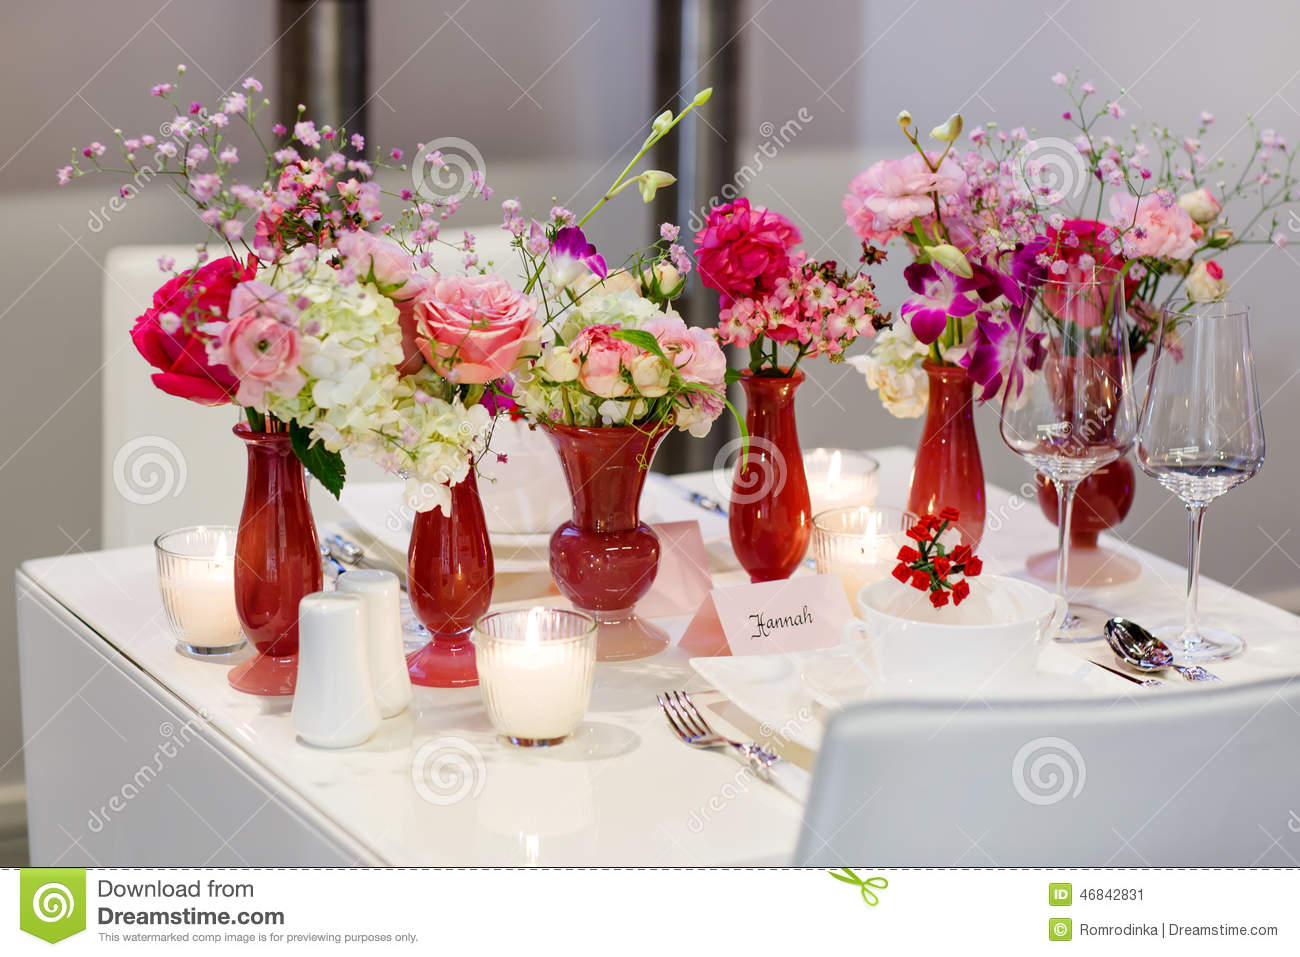 Elegant birthday table decorations - Elegant And Romantic Table Set Decoration For Wedding Or Event P